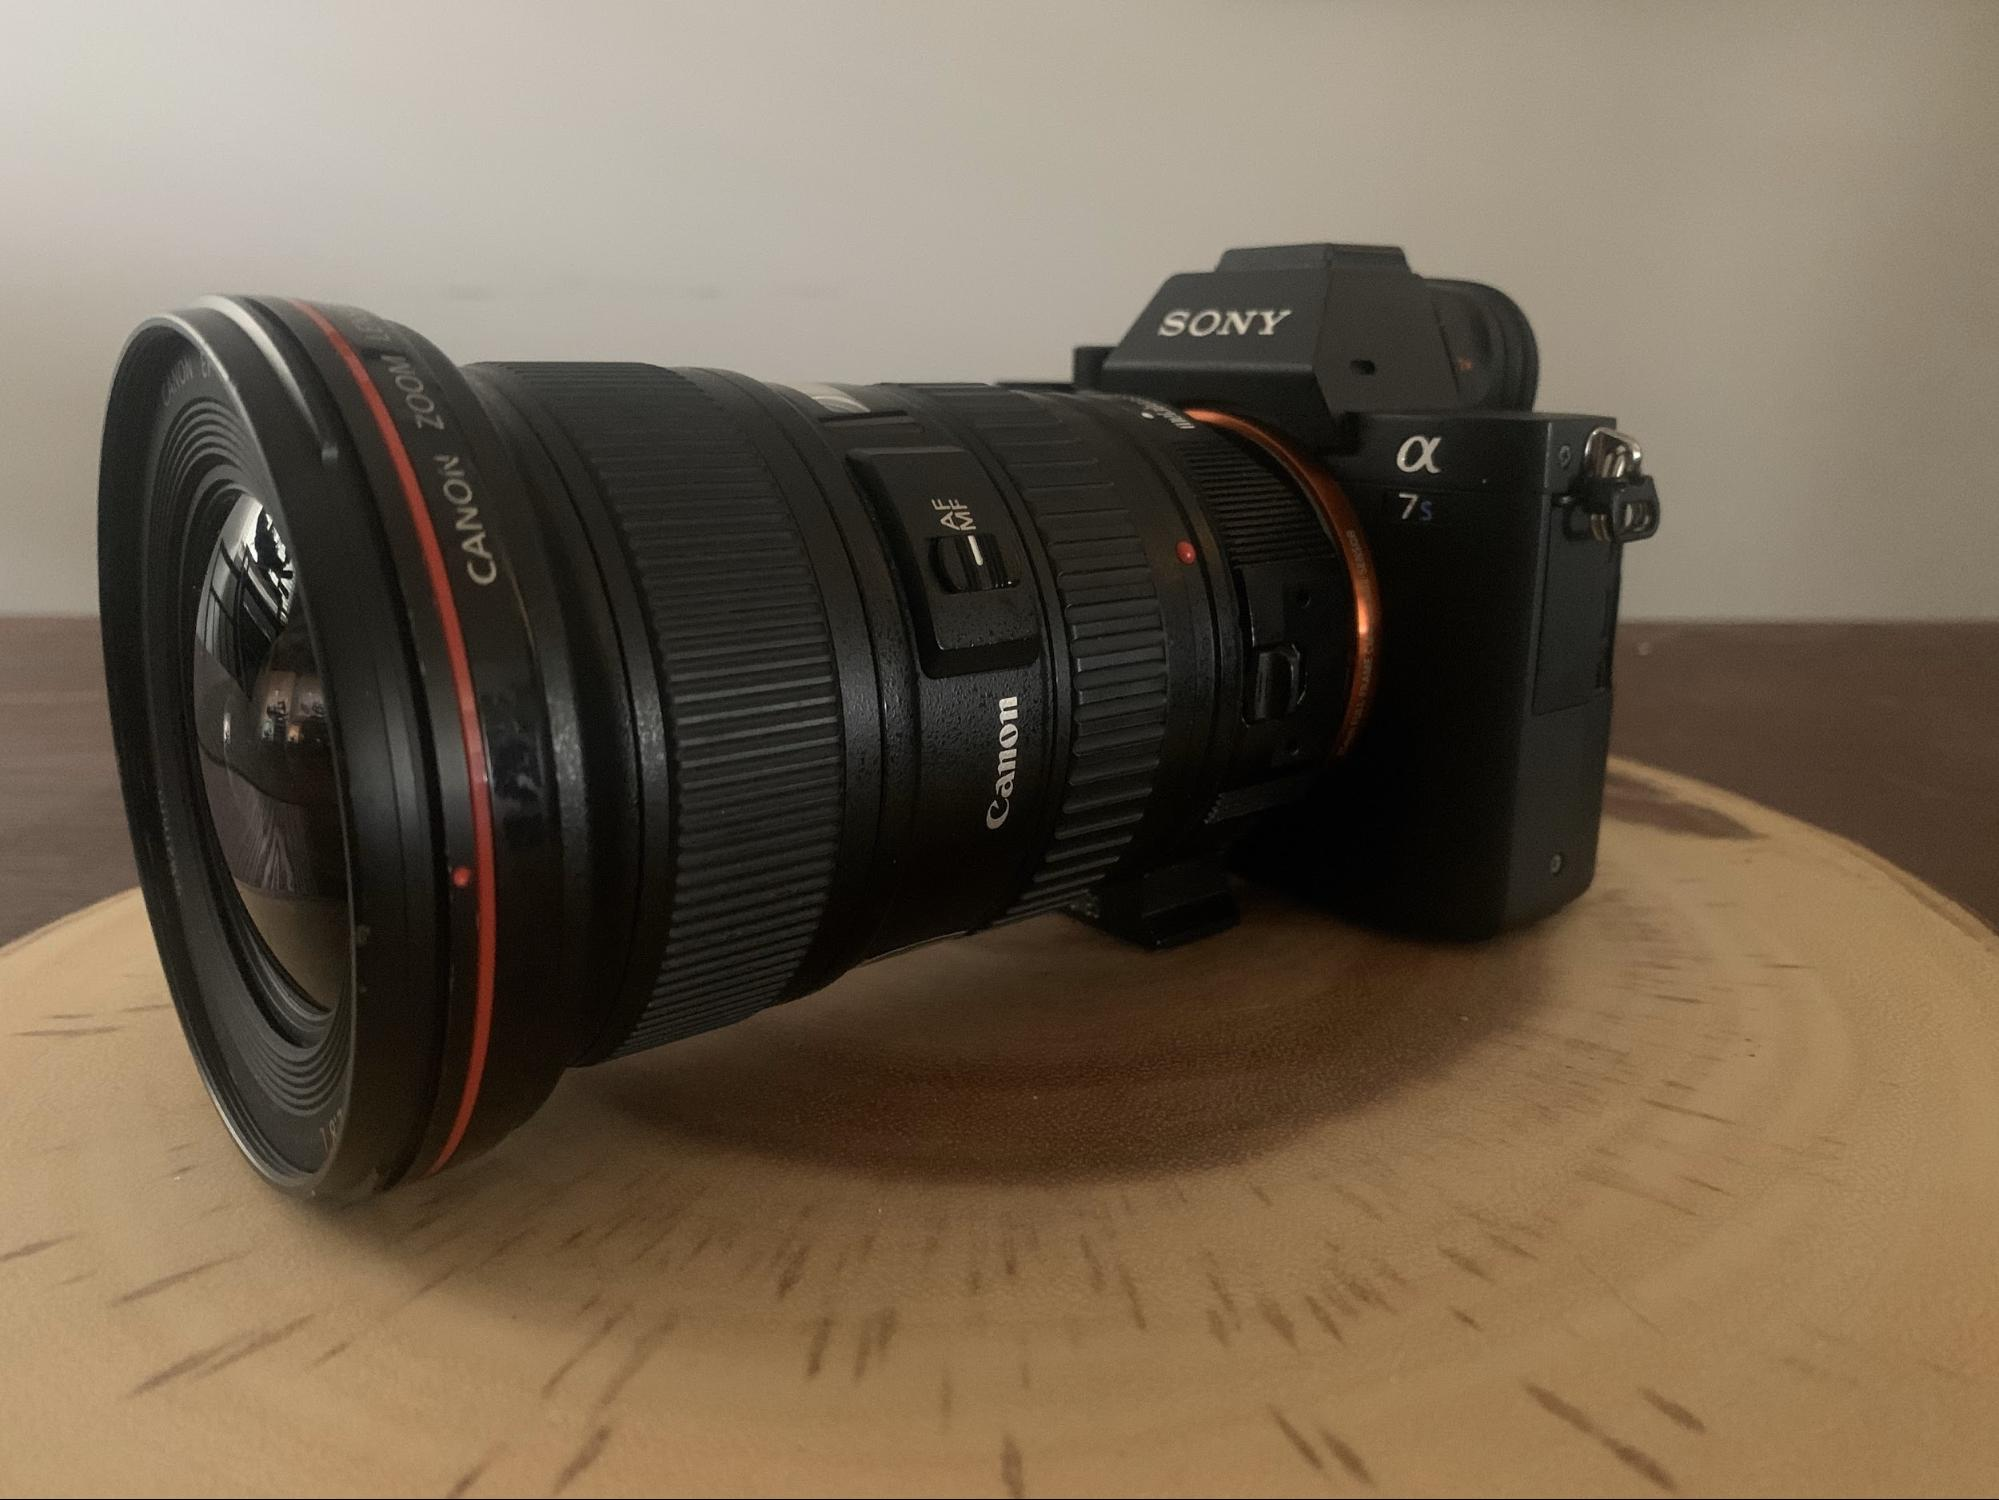 Sony a7Sii Features | The World's First Full-Frame Hybrid Camera